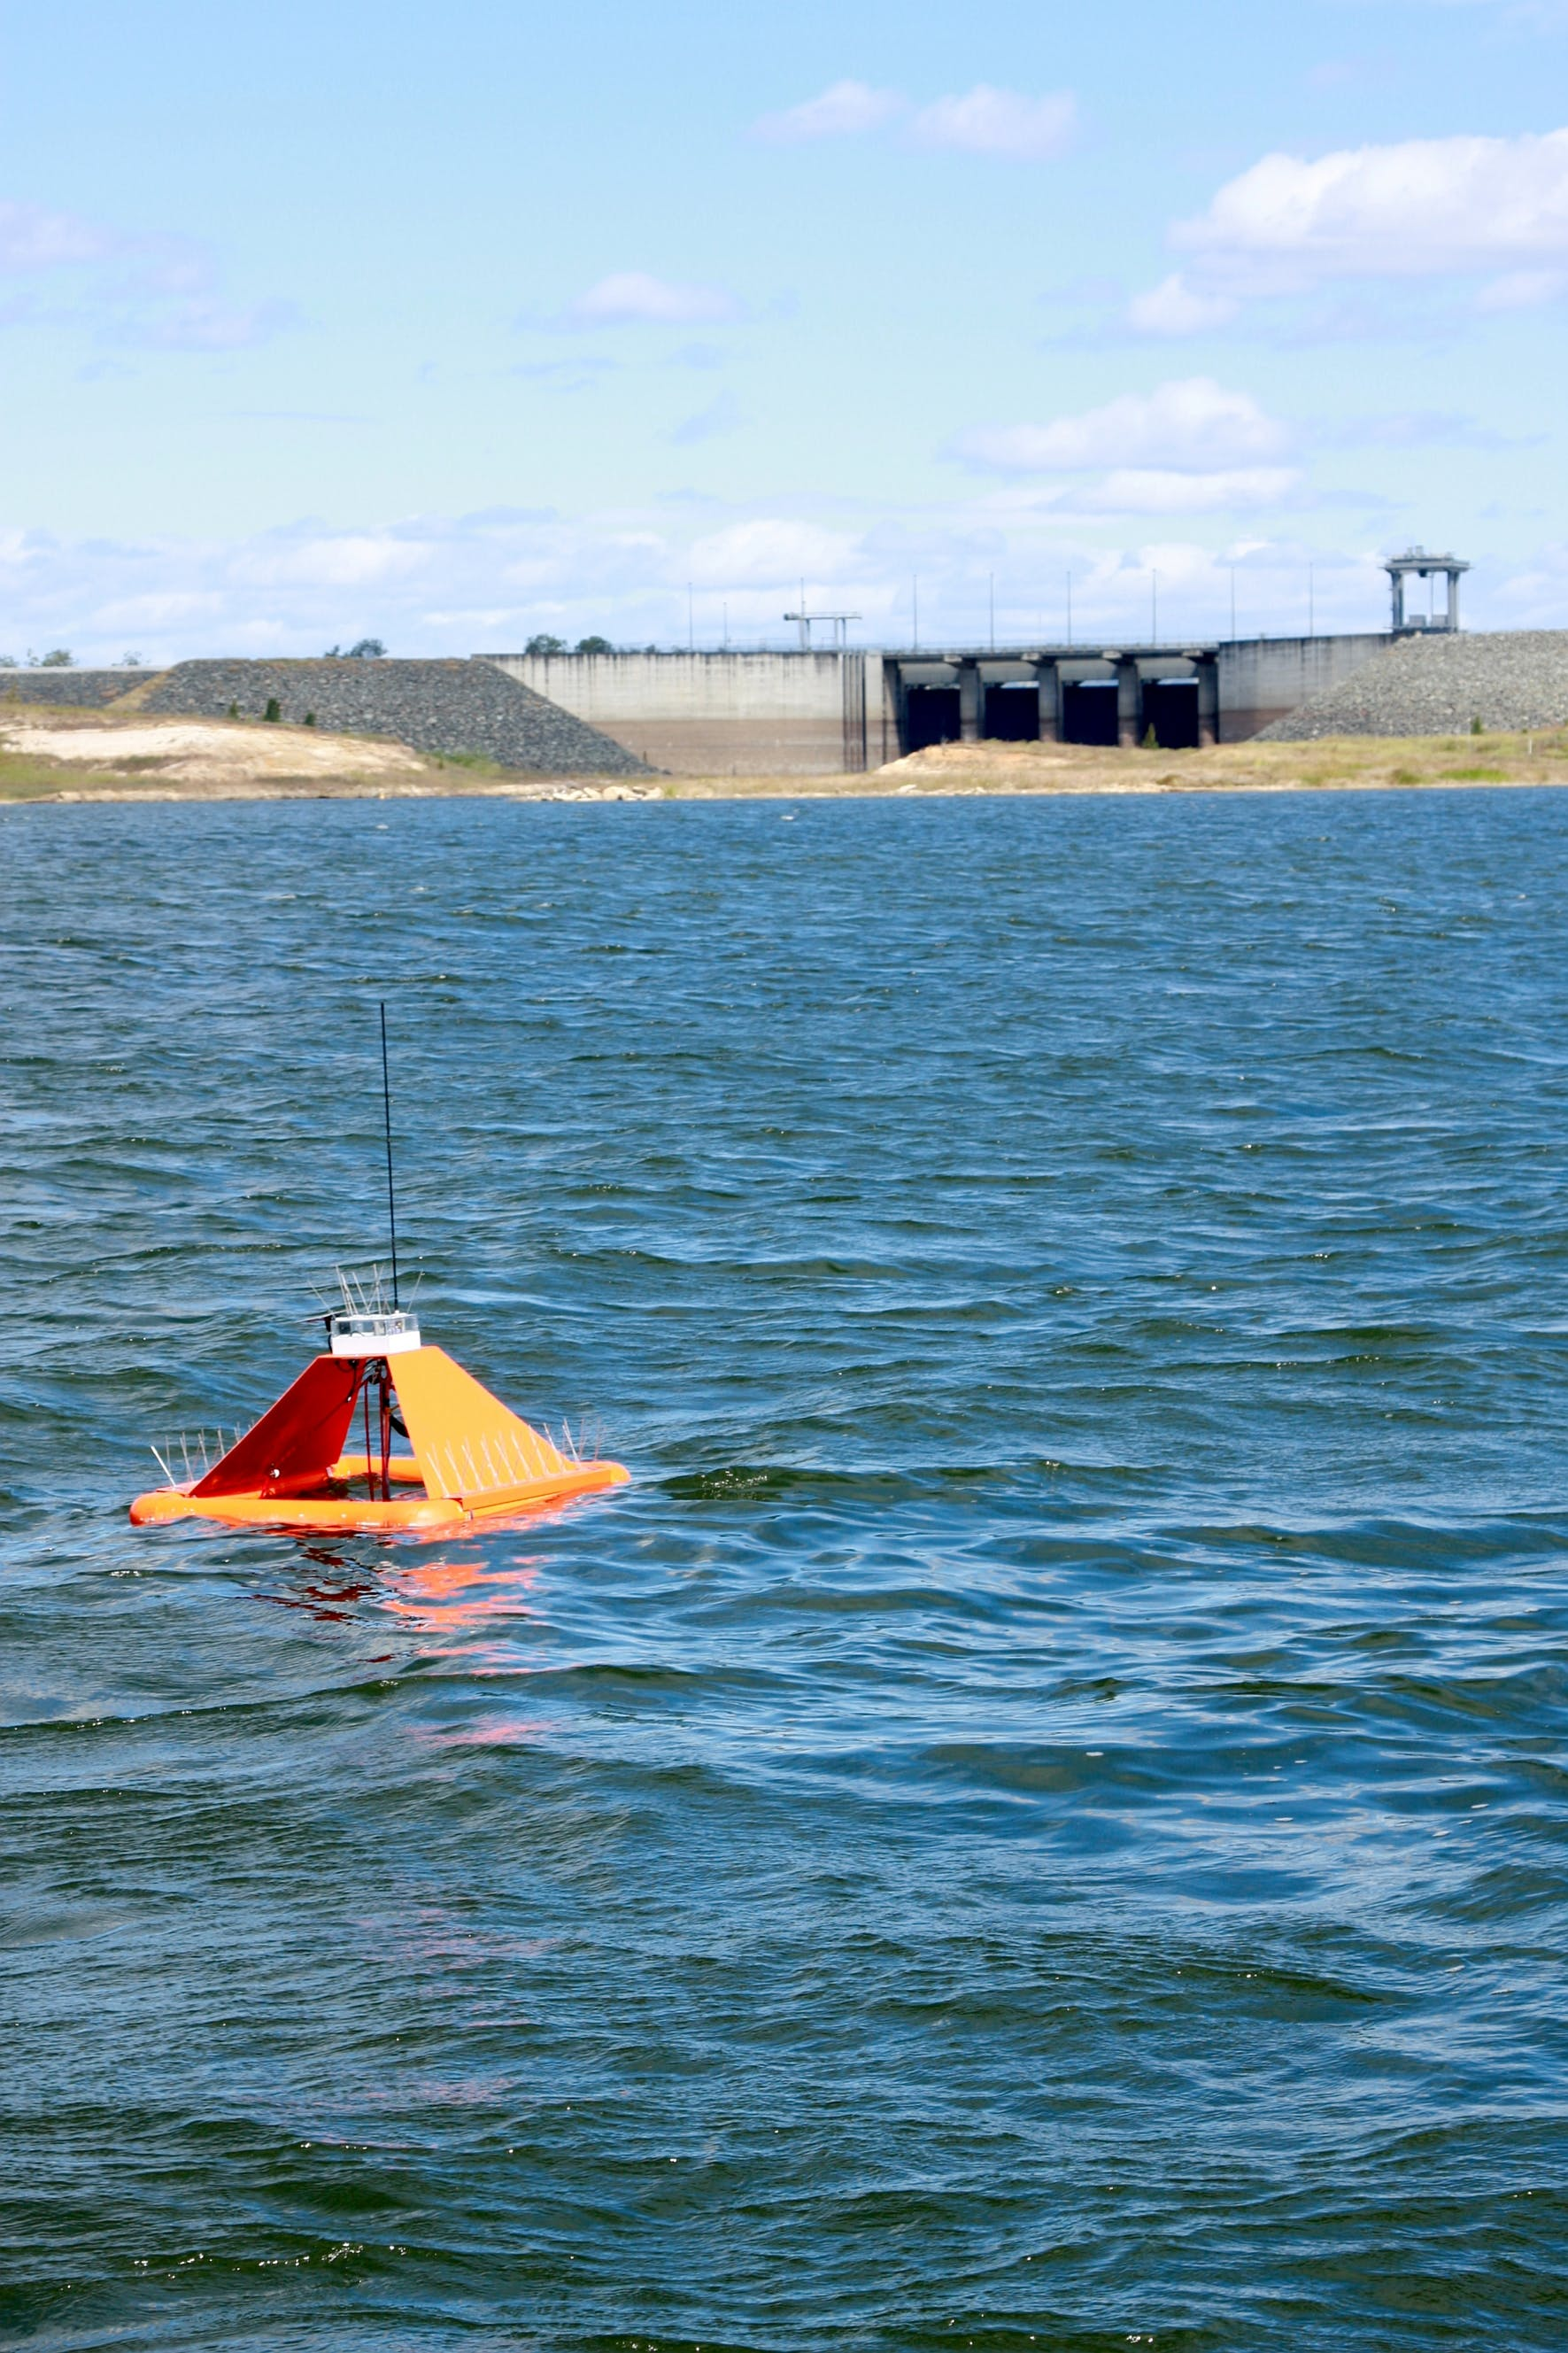 In a bay in Queensland, Australia, a floating remote sensor tracks environmental conditions